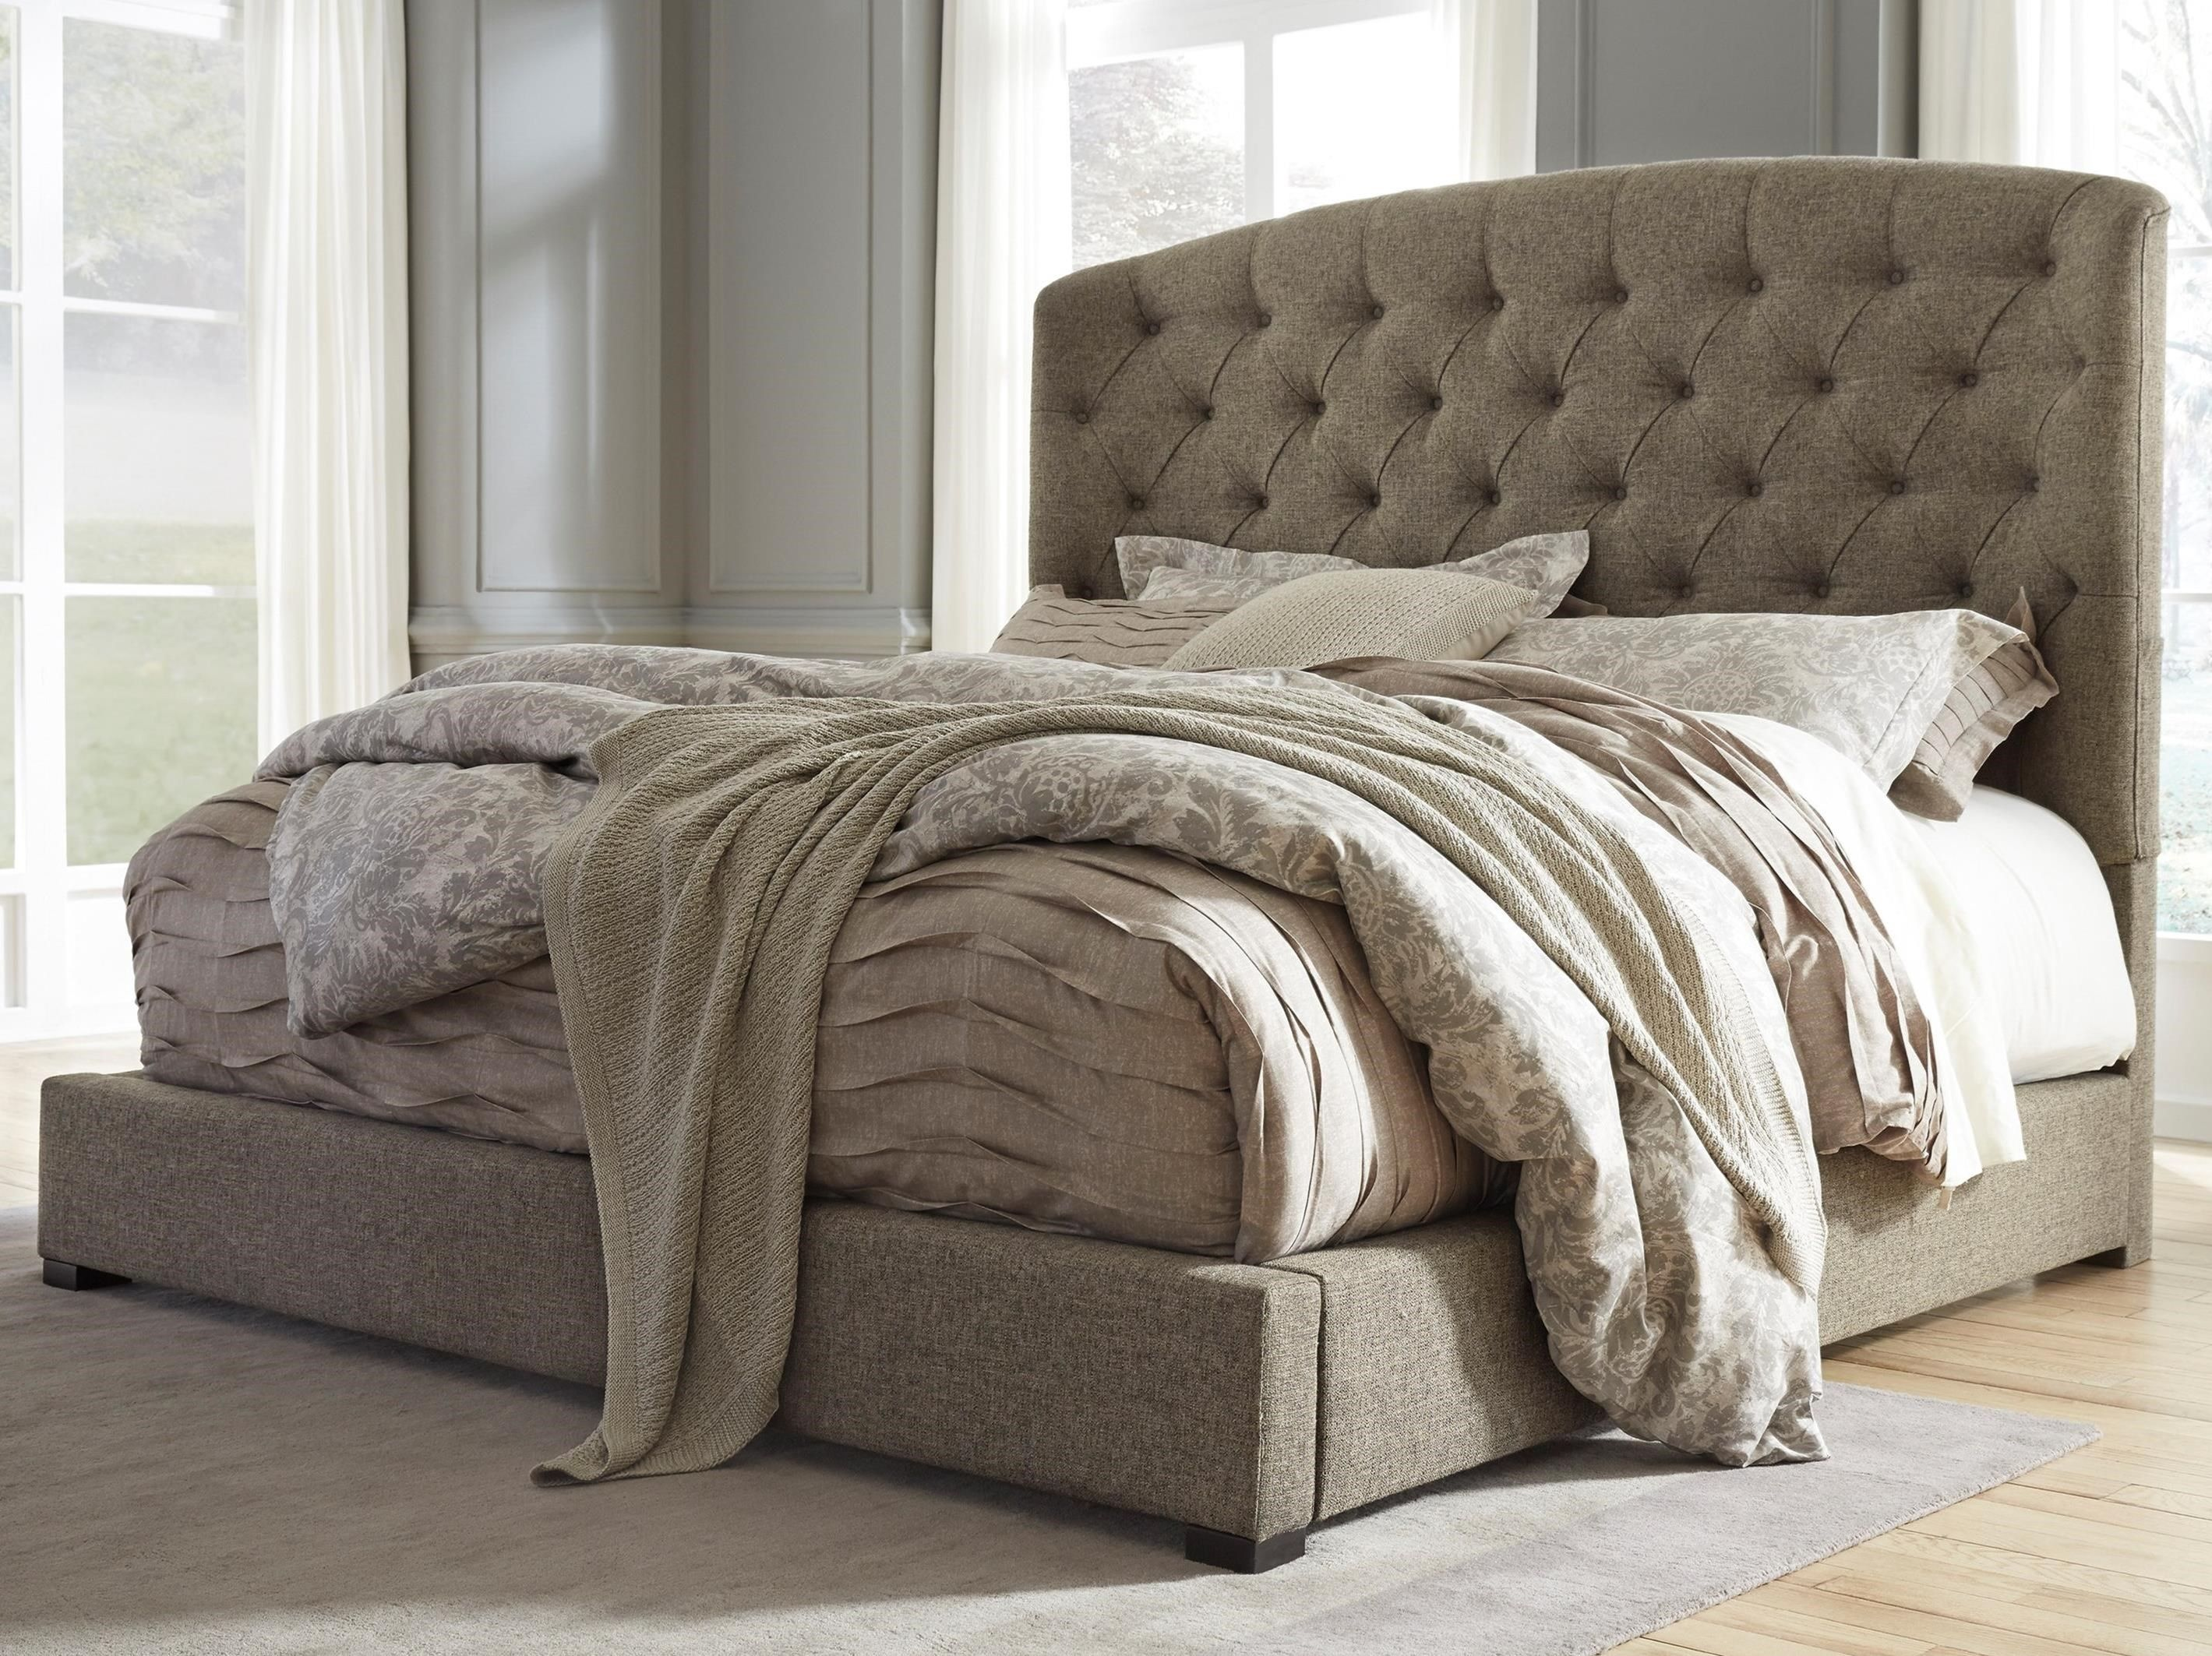 A Tall Diamond Tufted Arched Upholstered Headboard With